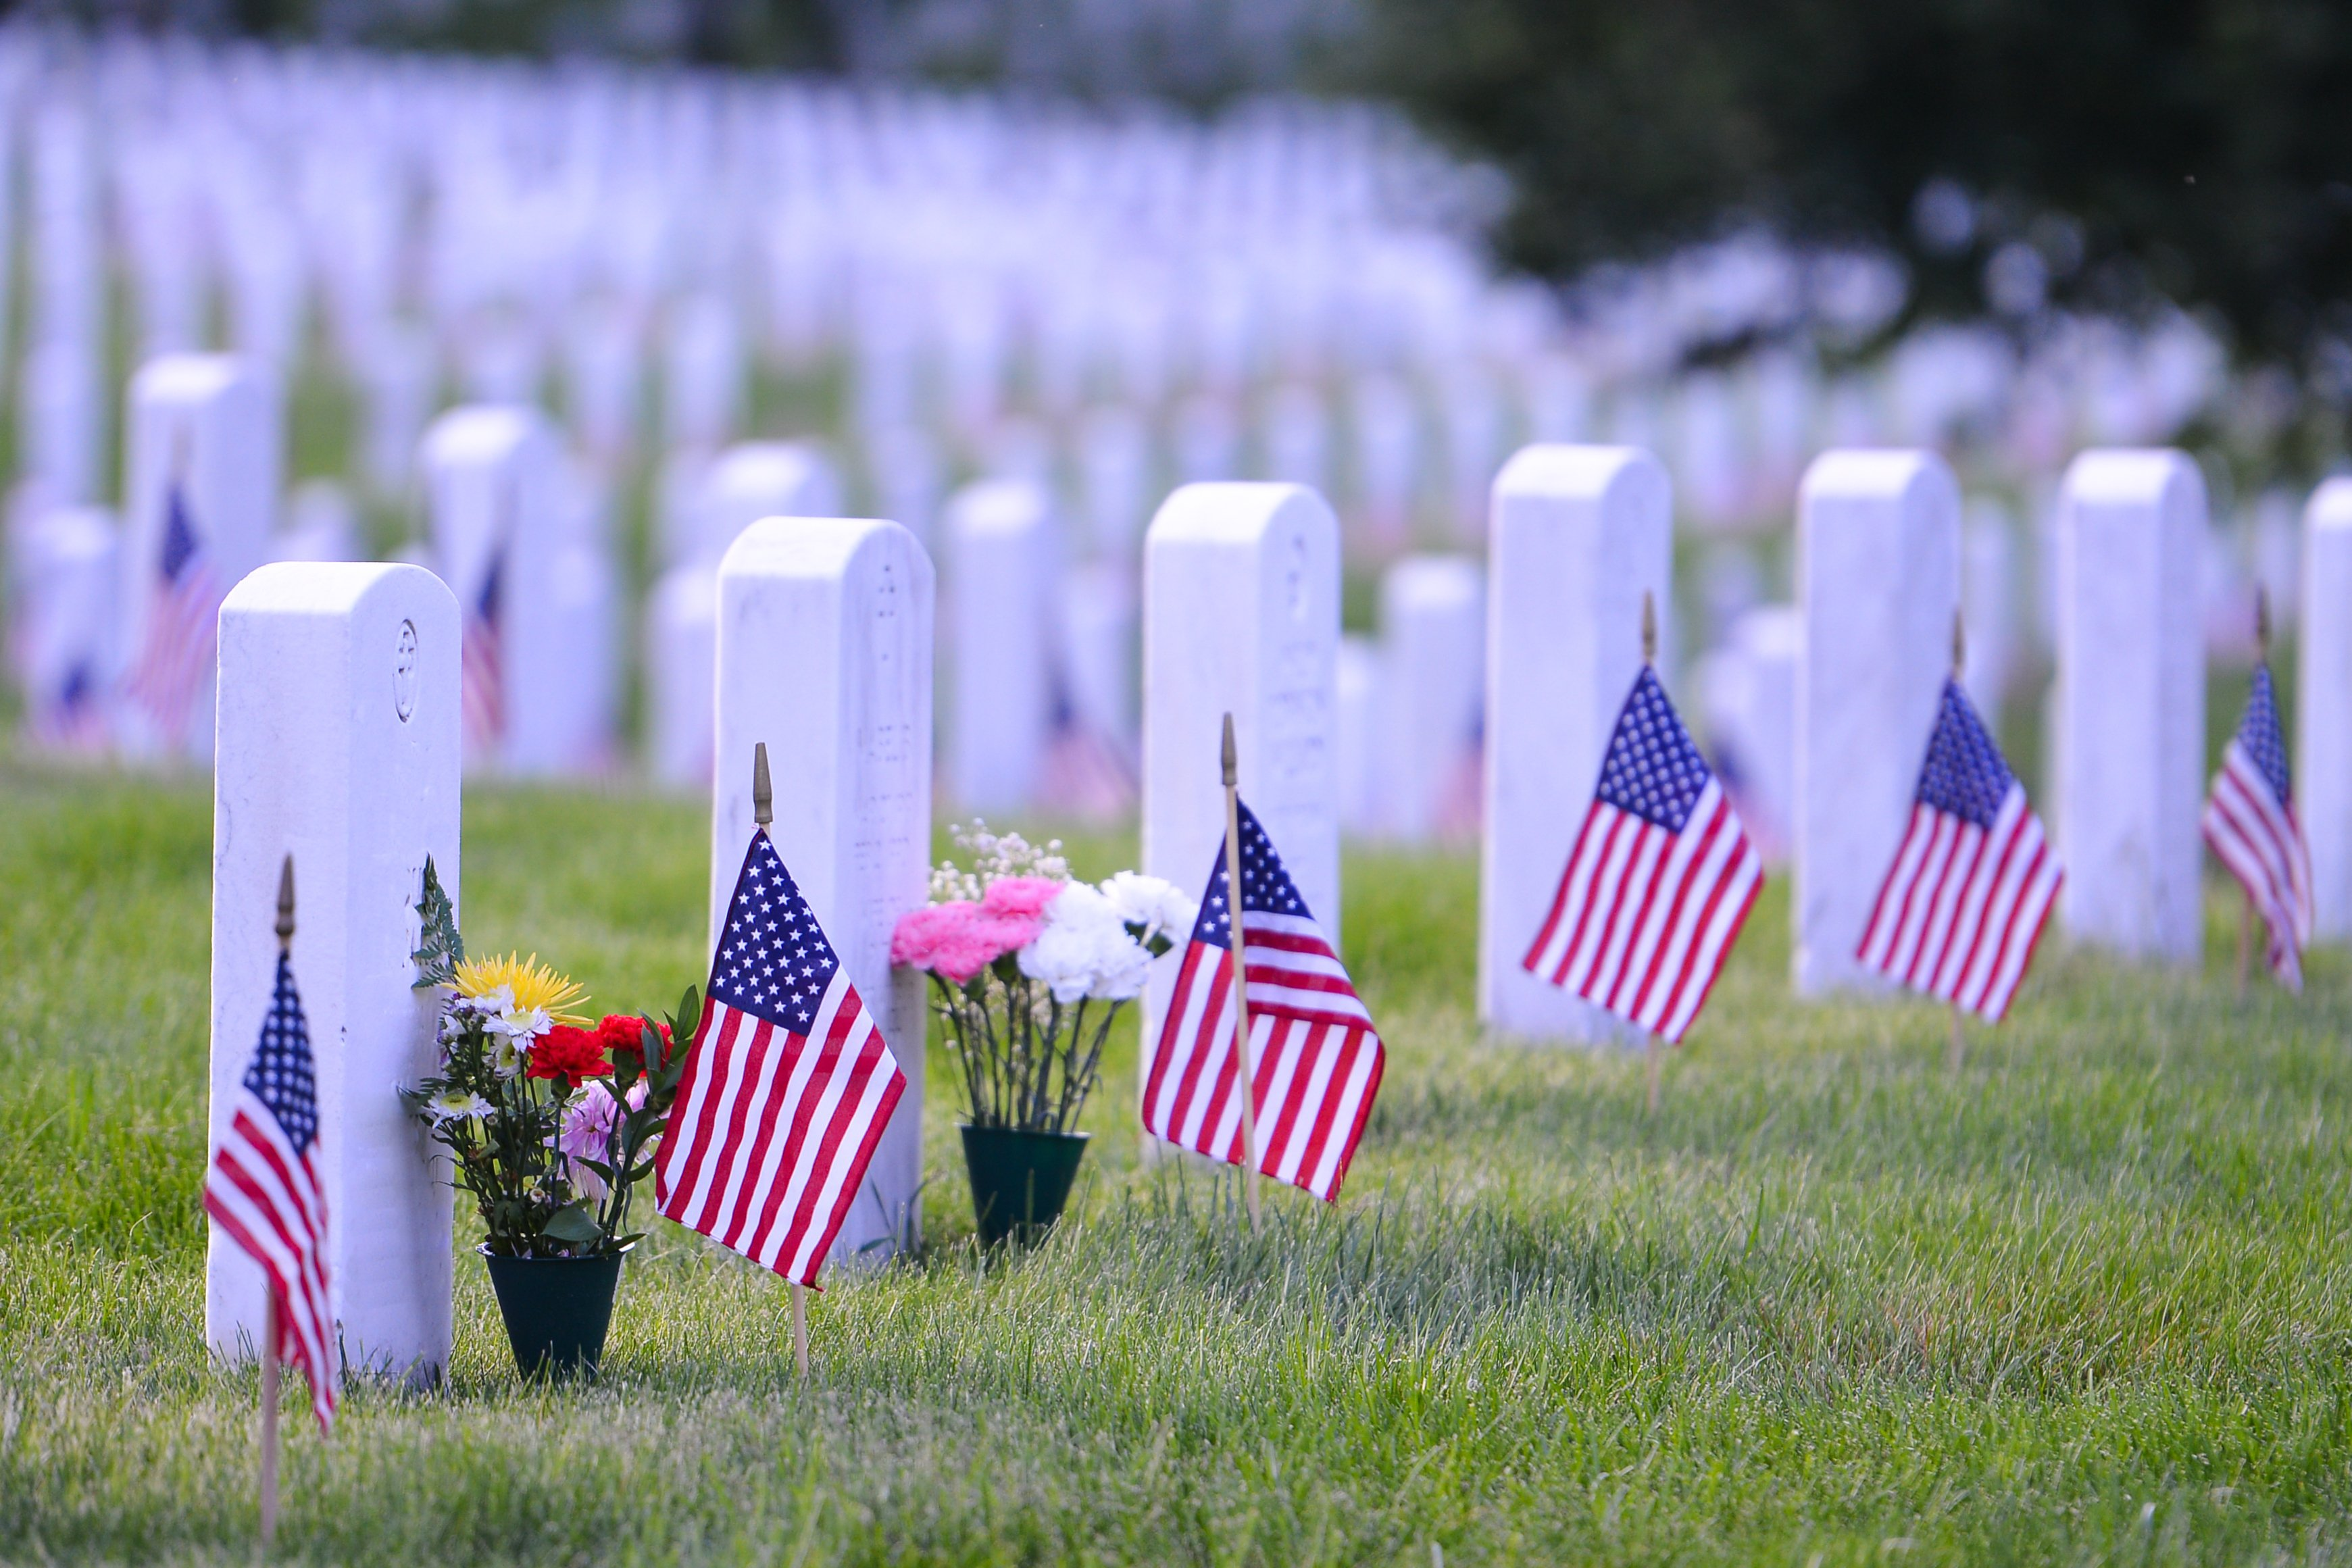 Arlington National Cemetery with a flag next to each headstone during Memorial Day (Orhan Cam/Shutterstock)